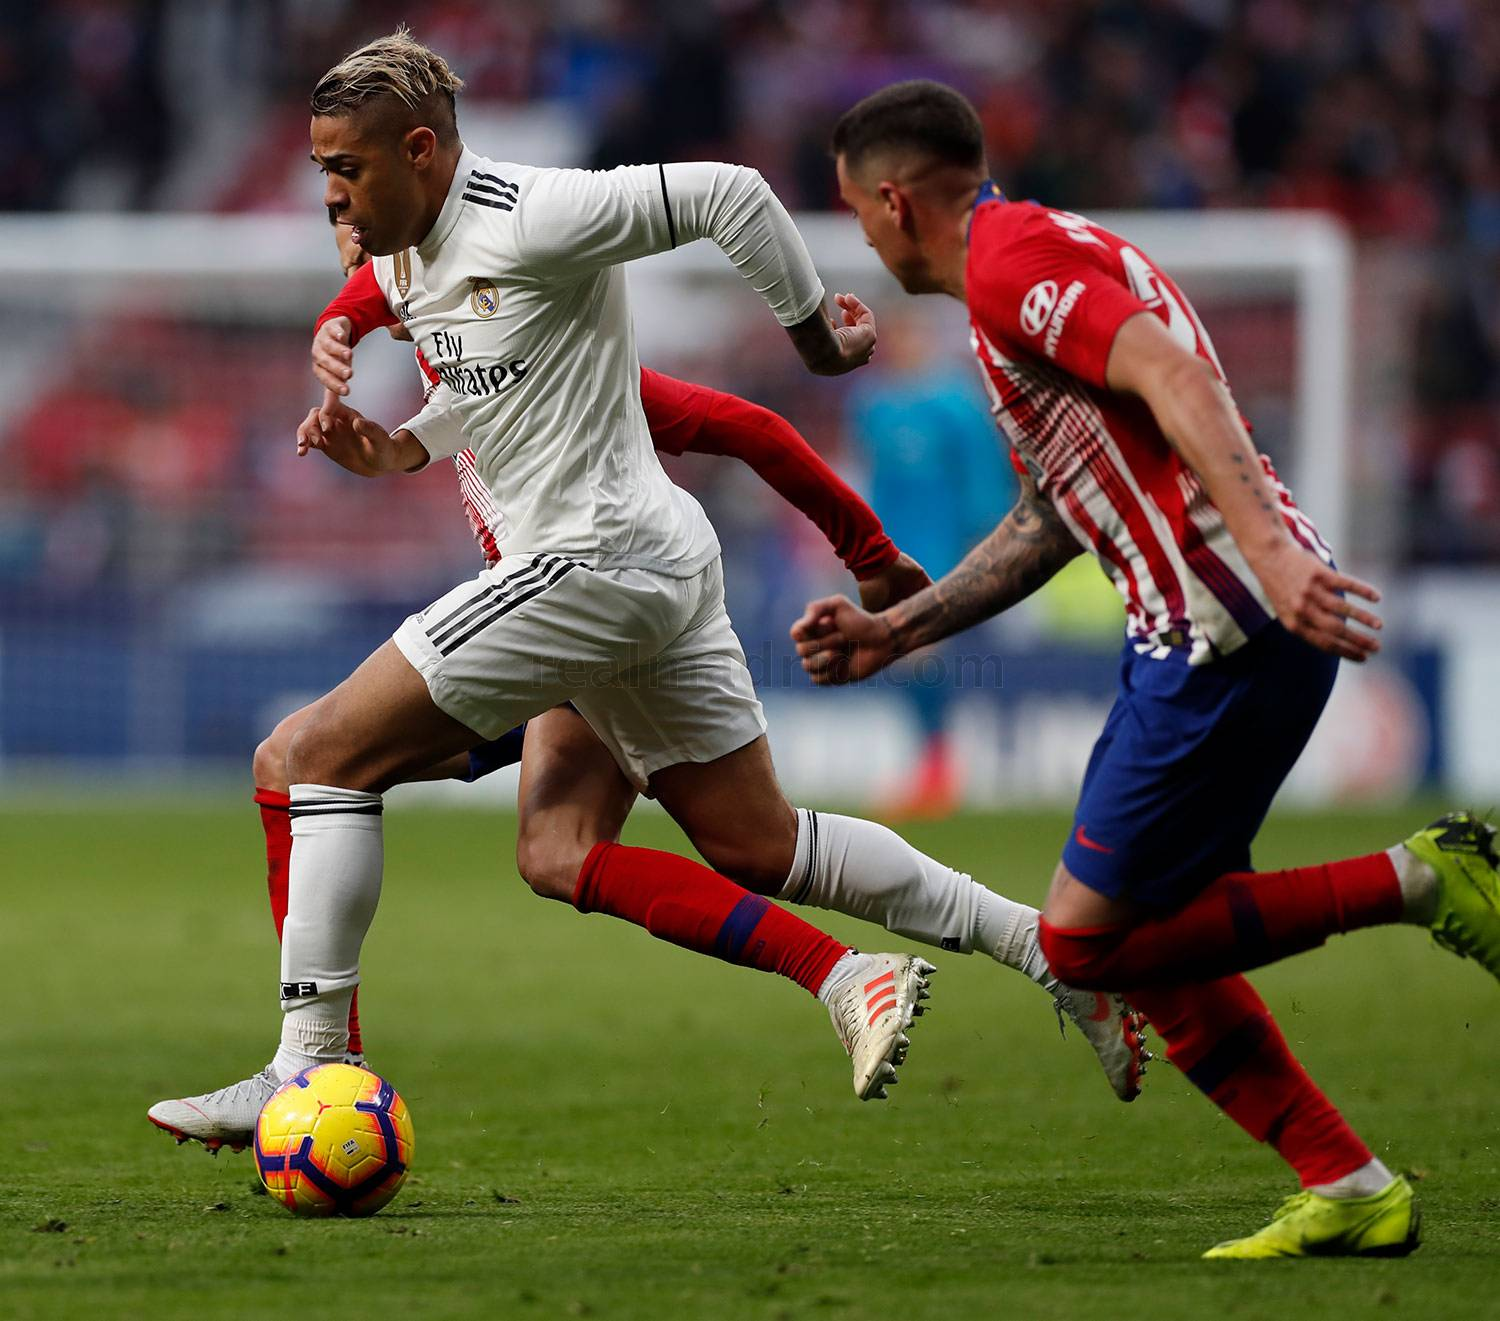 Real Madrid - Atlético de Madrid - Real Madrid - 09-02-2019